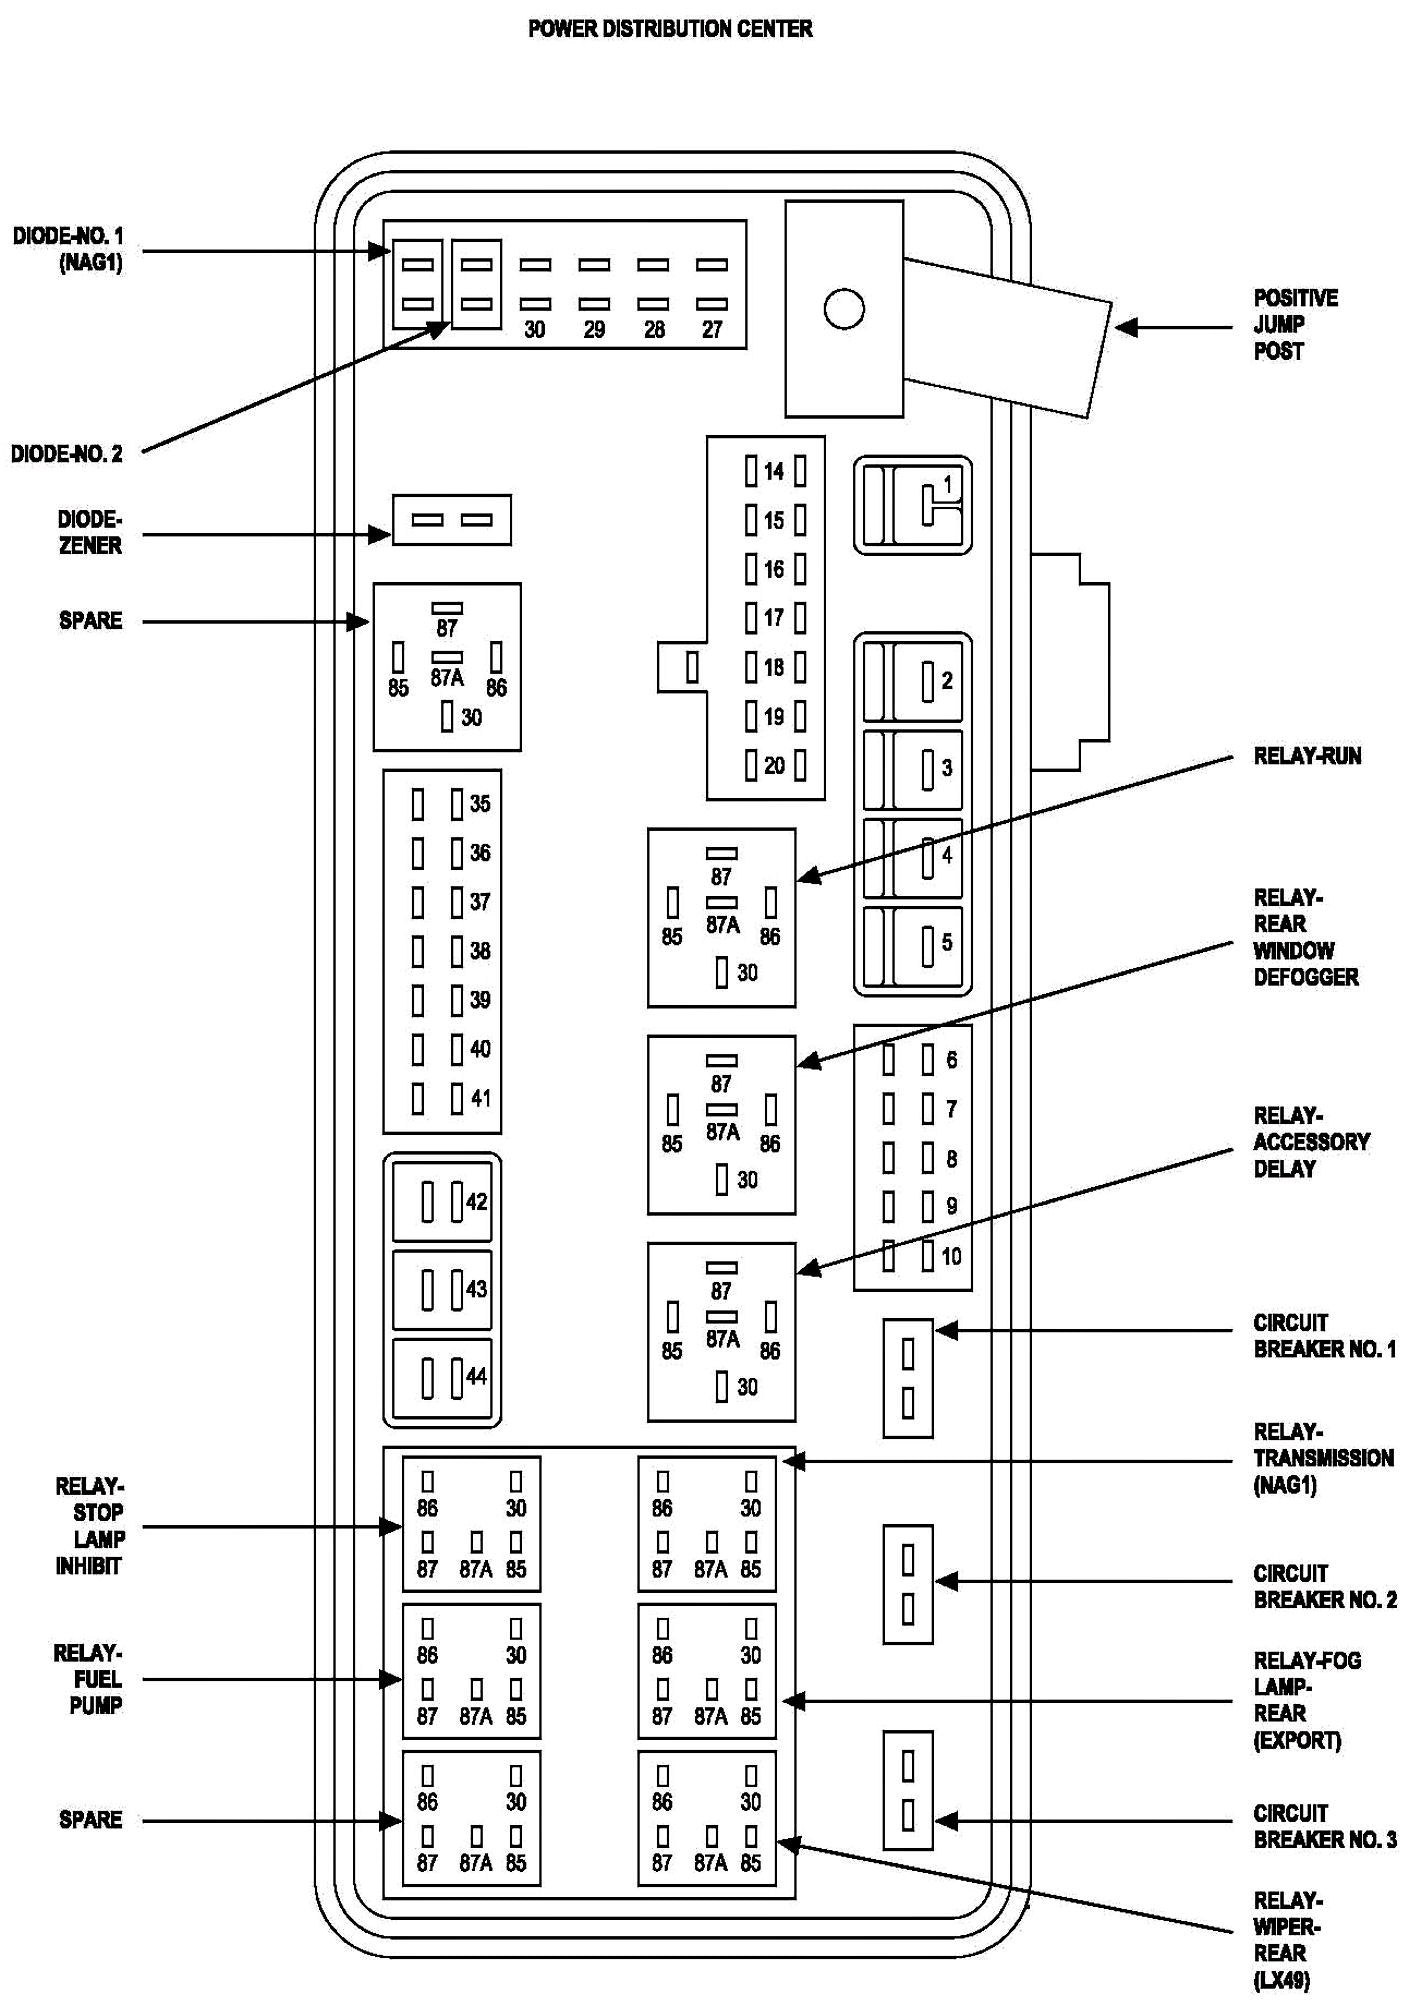 hight resolution of chrysler fuse diagram wiring diagram toolbox 2007 chrysler pt cruiser fuse box diagram 2007 pt cruiser fuse panel diagram